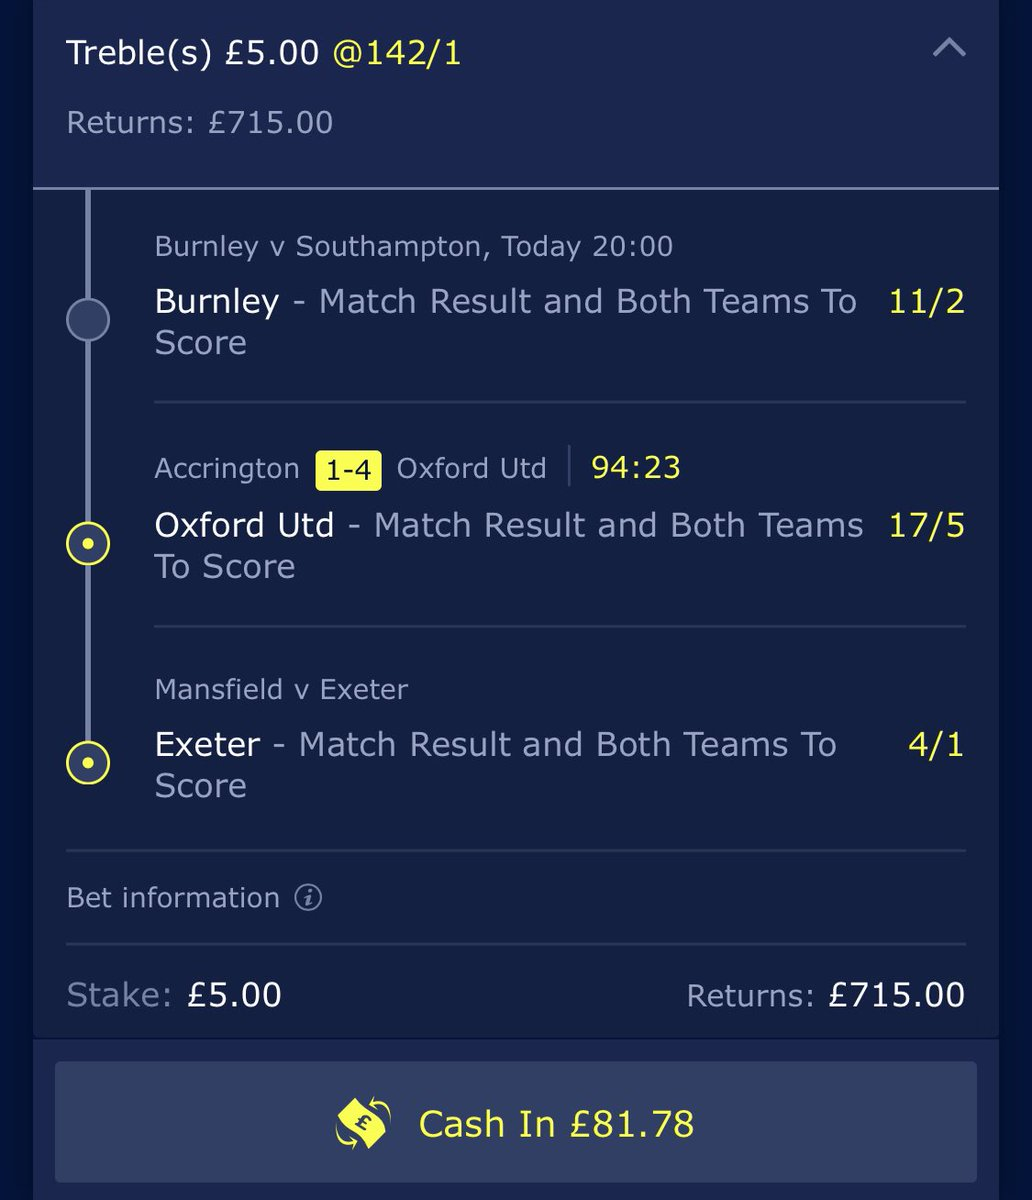 Well... this could make my evening. Almost wish this was the 5:30 game! 🤣 COME ON! #BURSOU #Acca #BookieBashing 👍🏻💰🎣👊🏽🤞🏻 https://t.co/S5PSAhqp2E